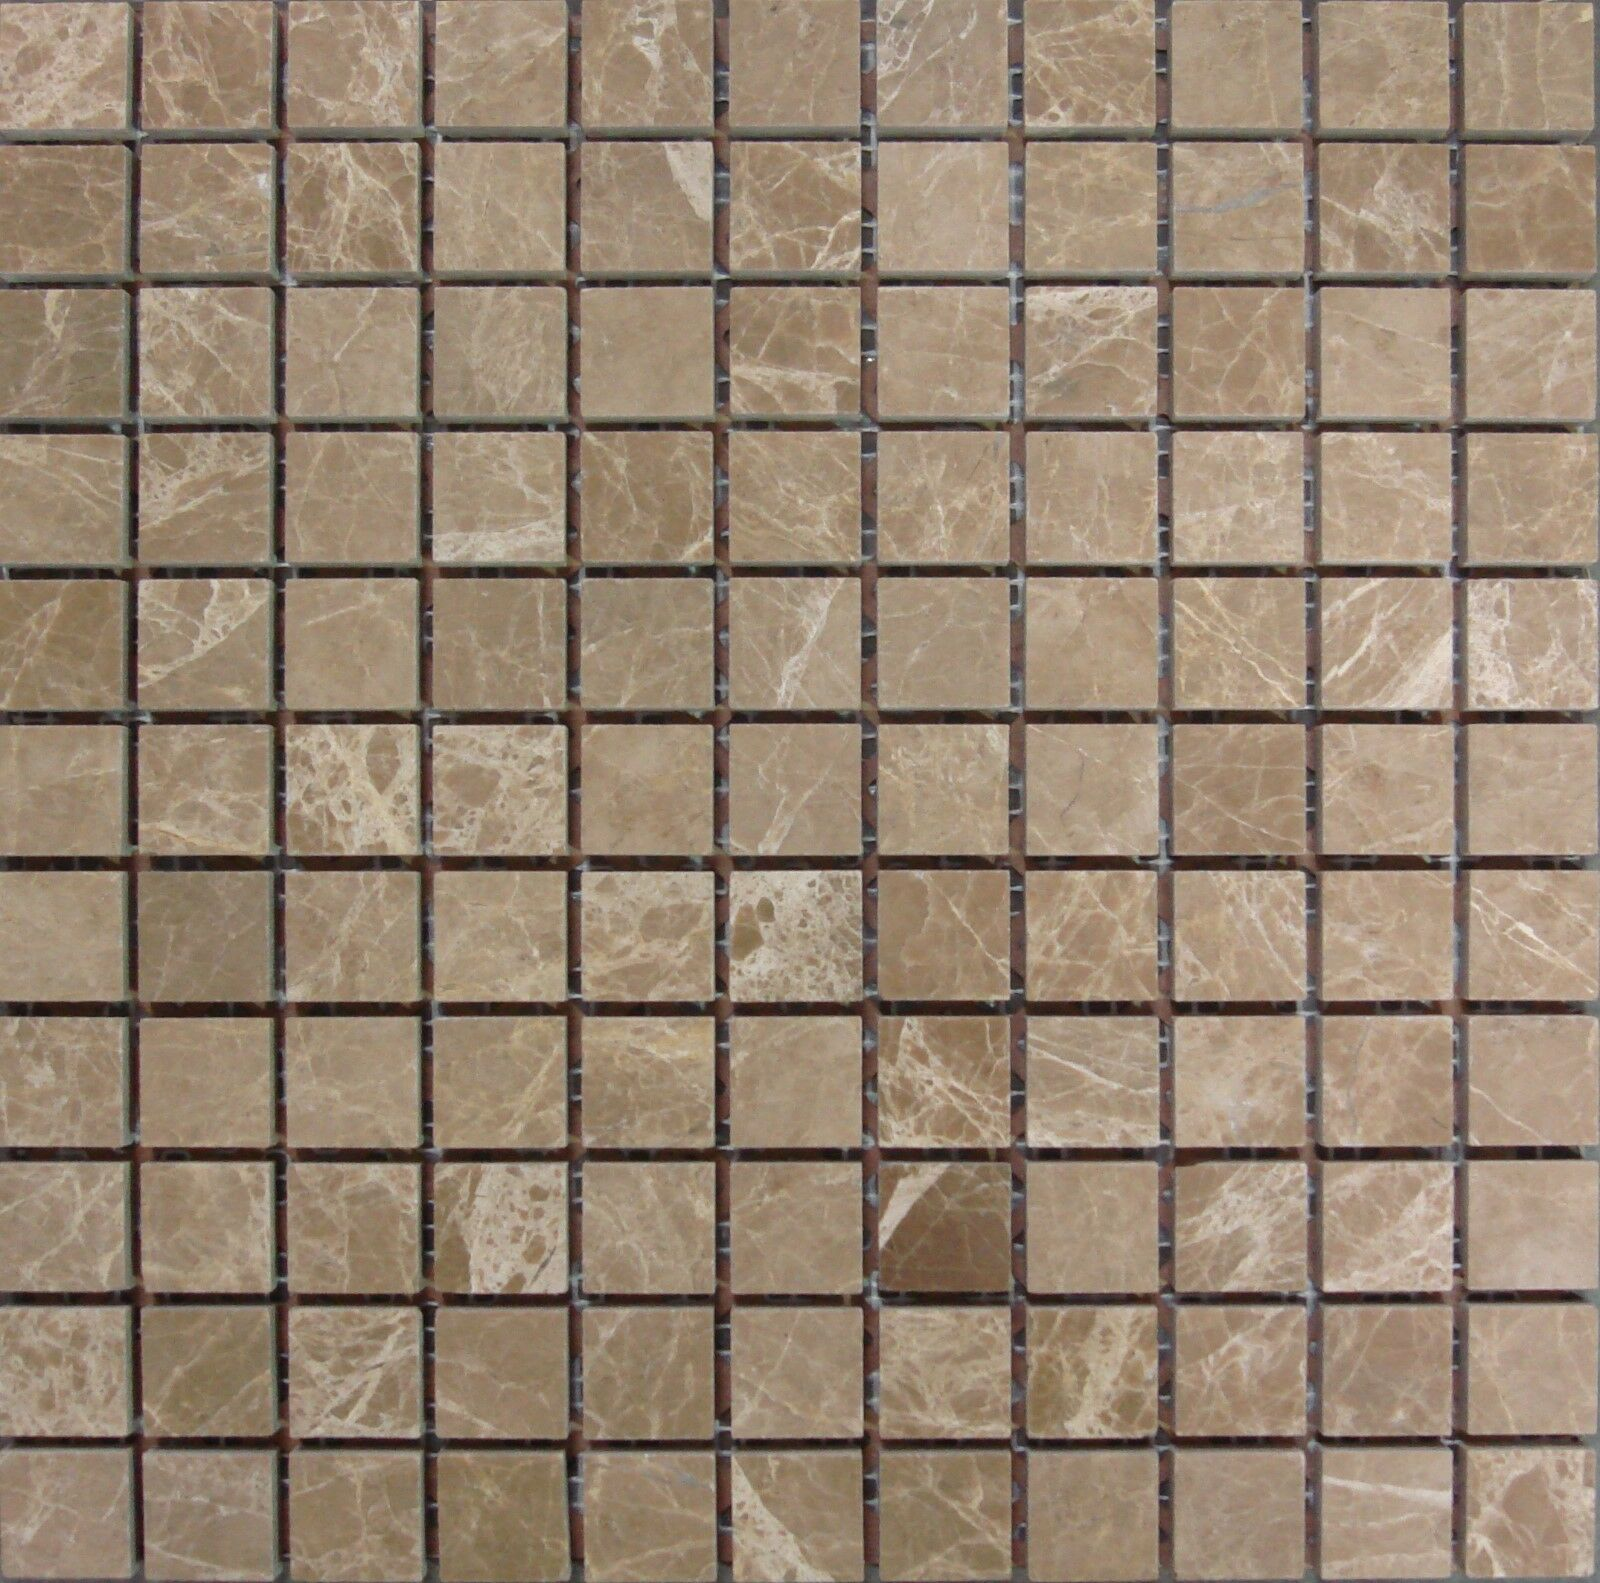 Emperador Light 1 x1  Square Marble Polished Mosaic.( 9.75 per Sheet)